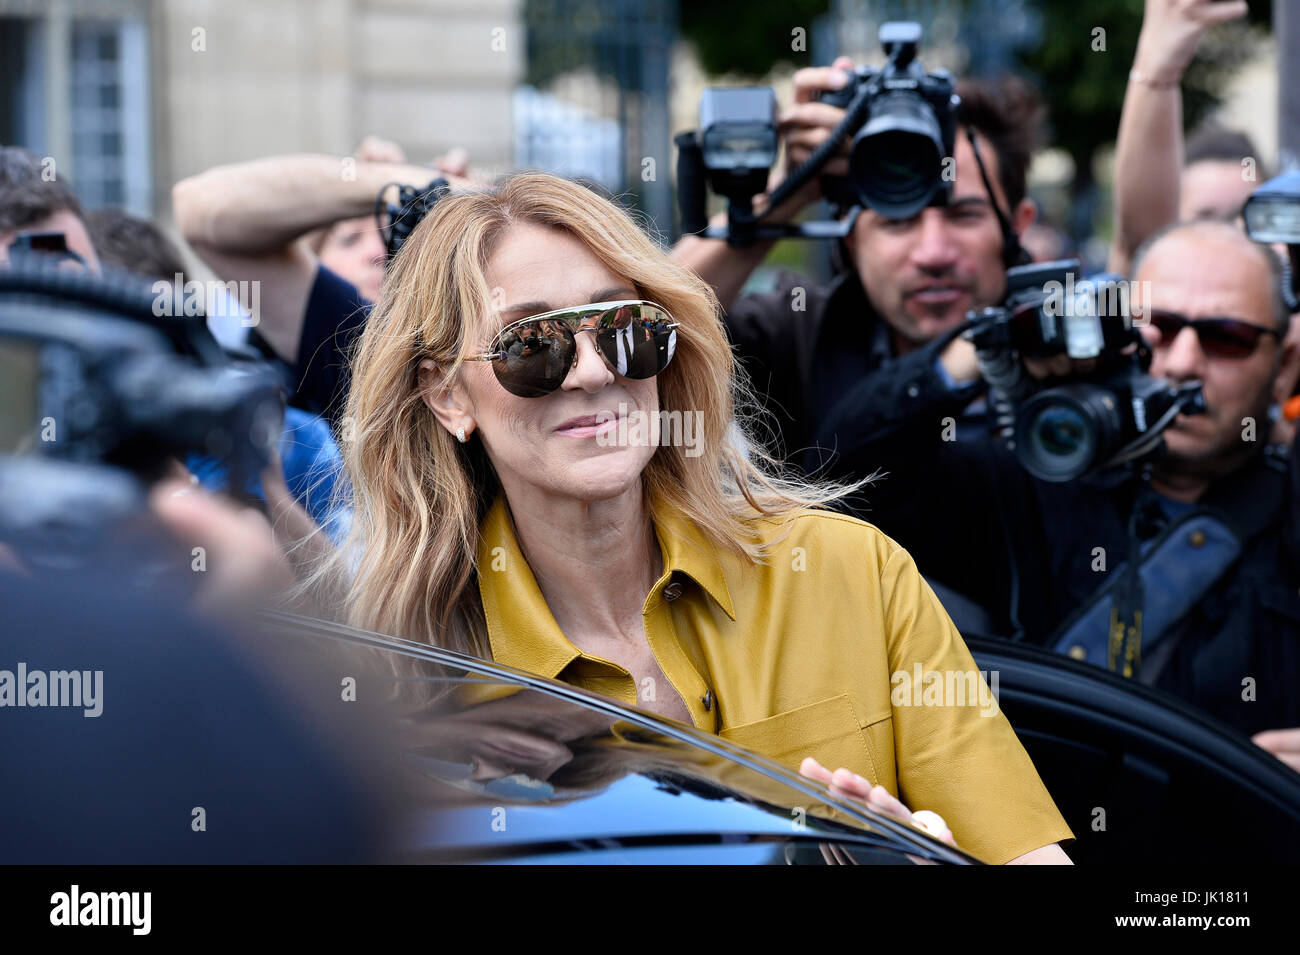 3738dcde65f Celine Dion Stock Photos   Celine Dion Stock Images - Alamy